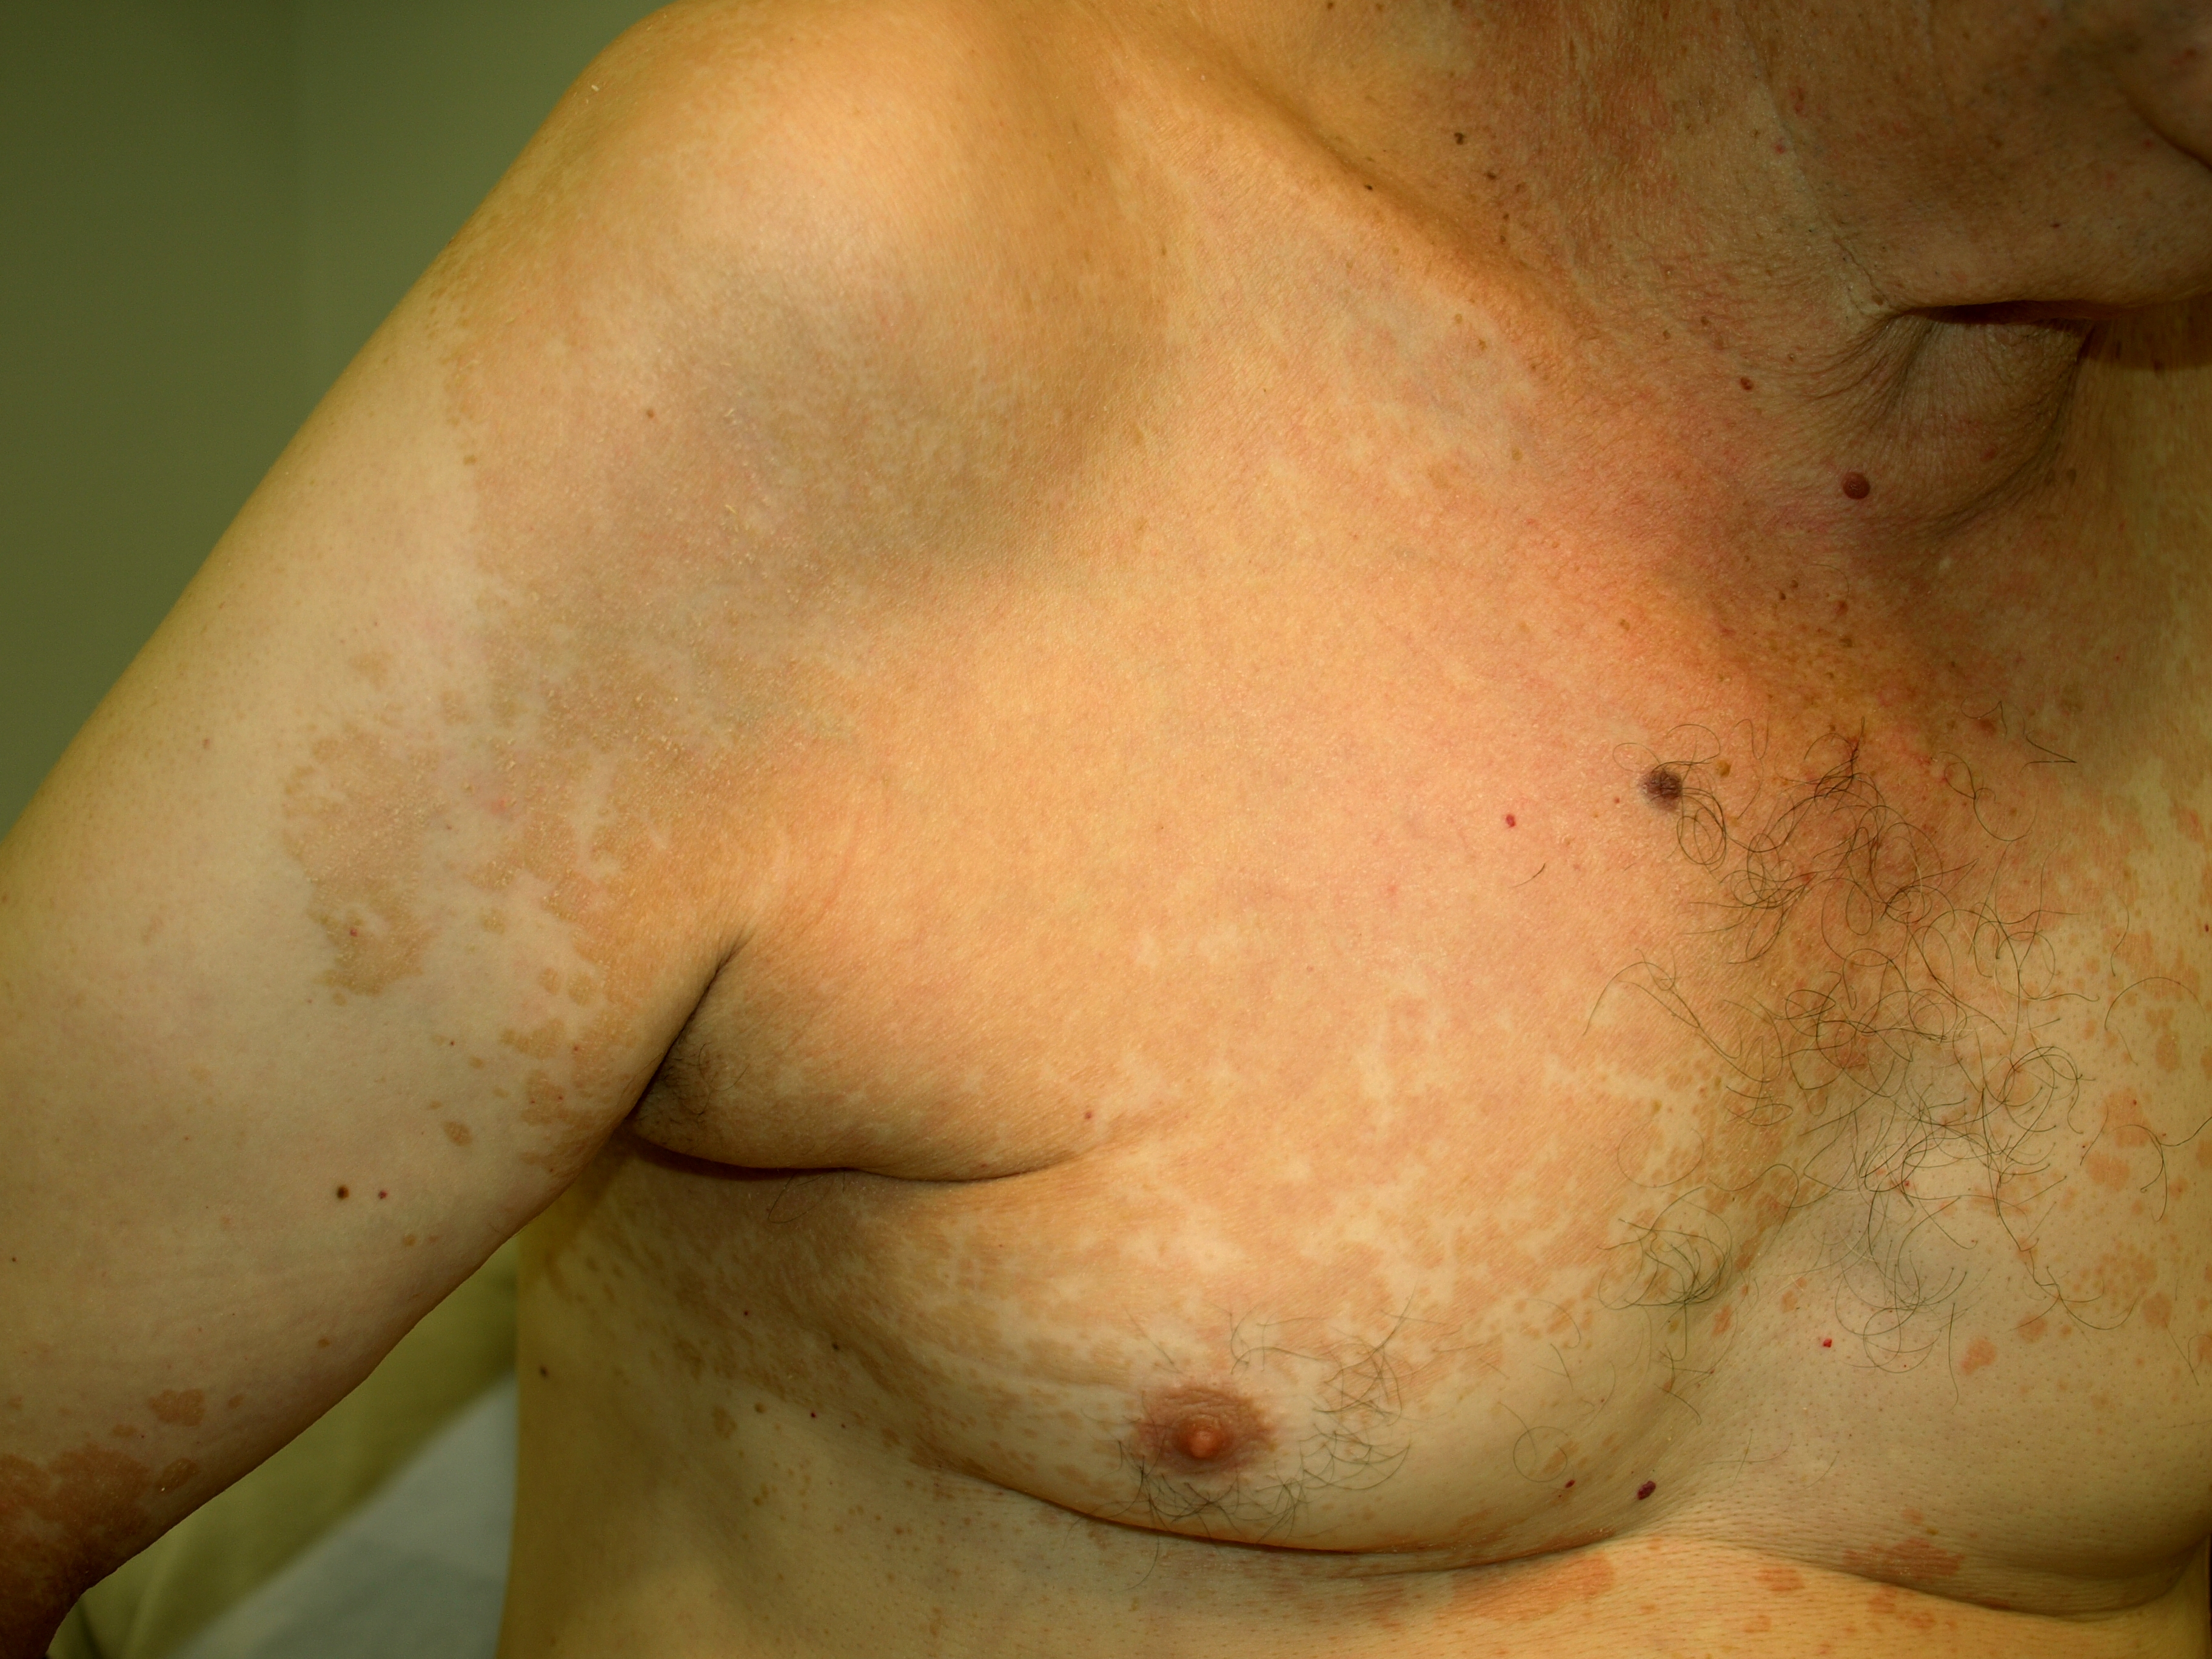 http://upload.wikimedia.org/wikipedia/commons/7/79/Tinea.jpg